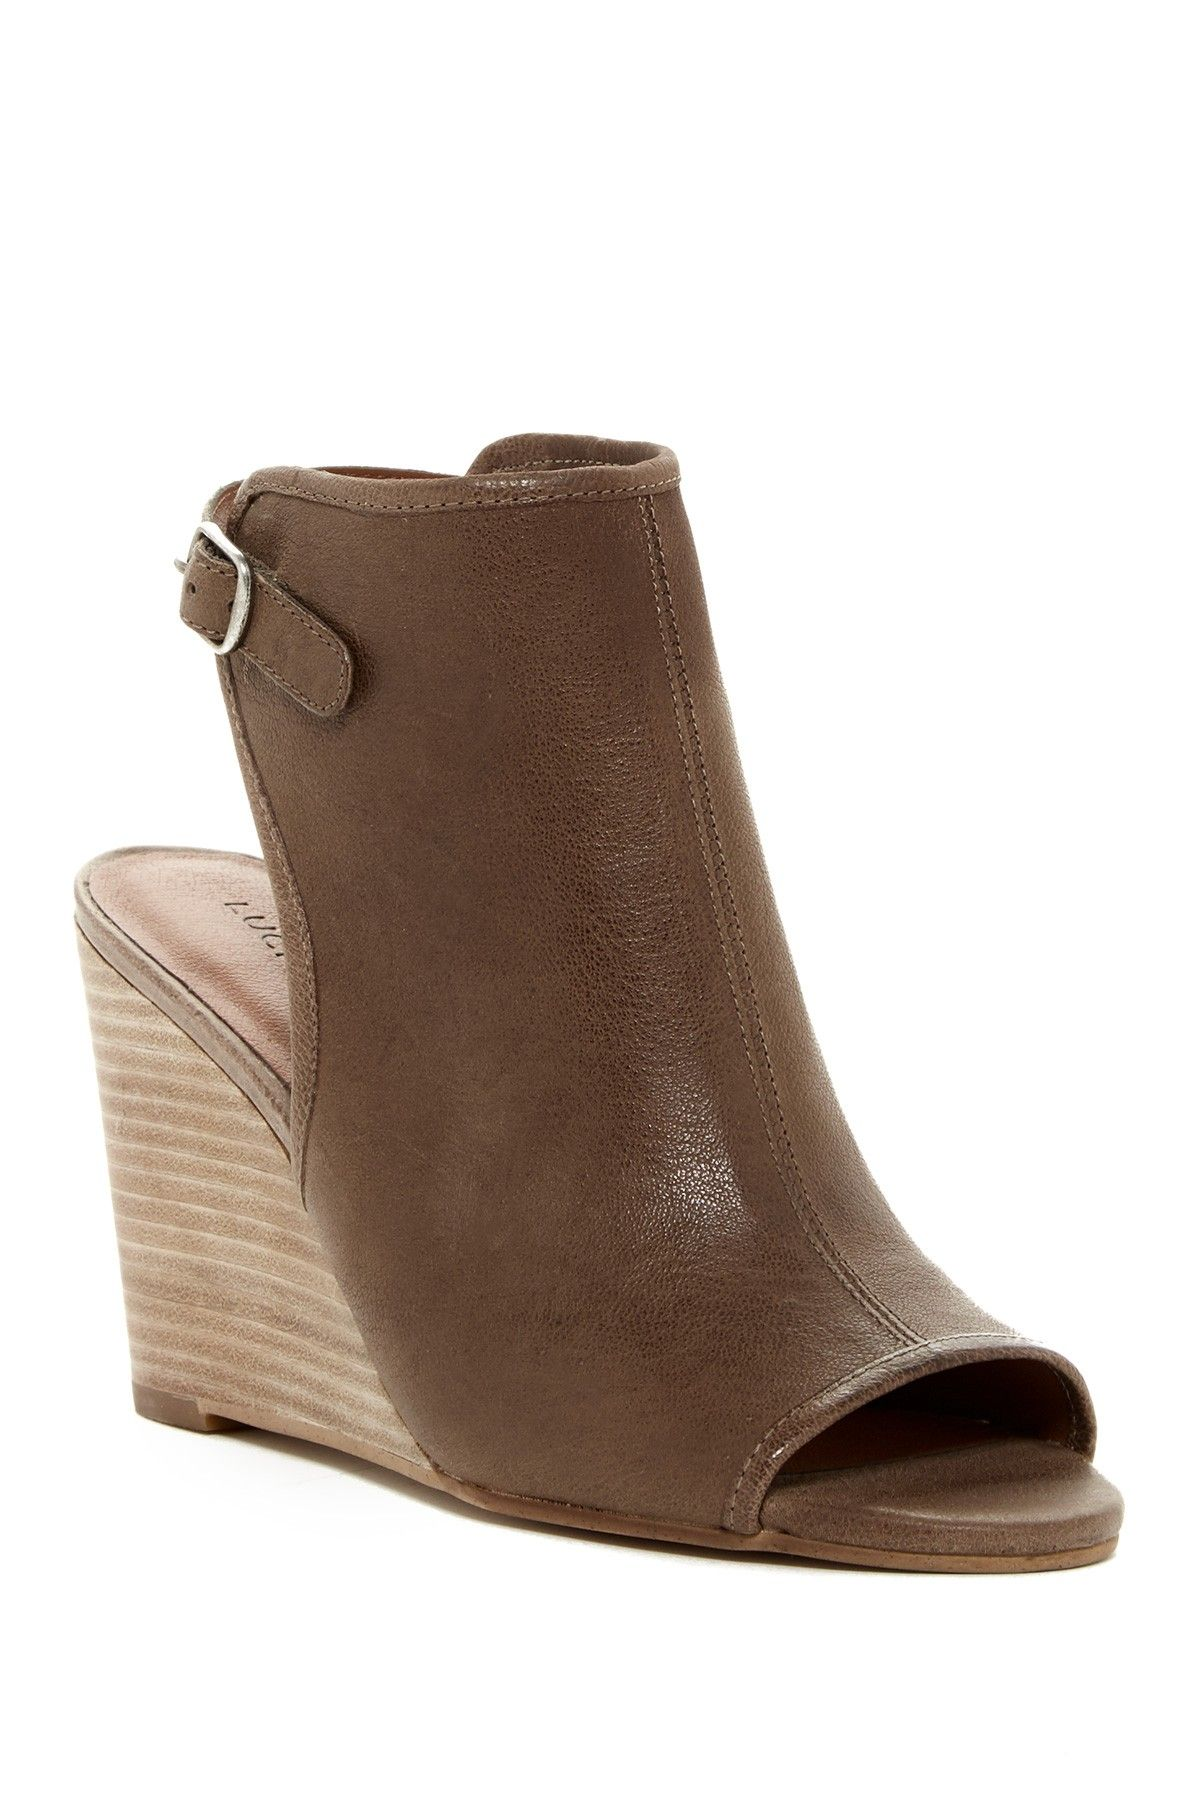 9f51e79fbdec Lucky Brand - Risza Wedge Bootie at Nordstrom Rack. Free Shipping on orders  over  100.